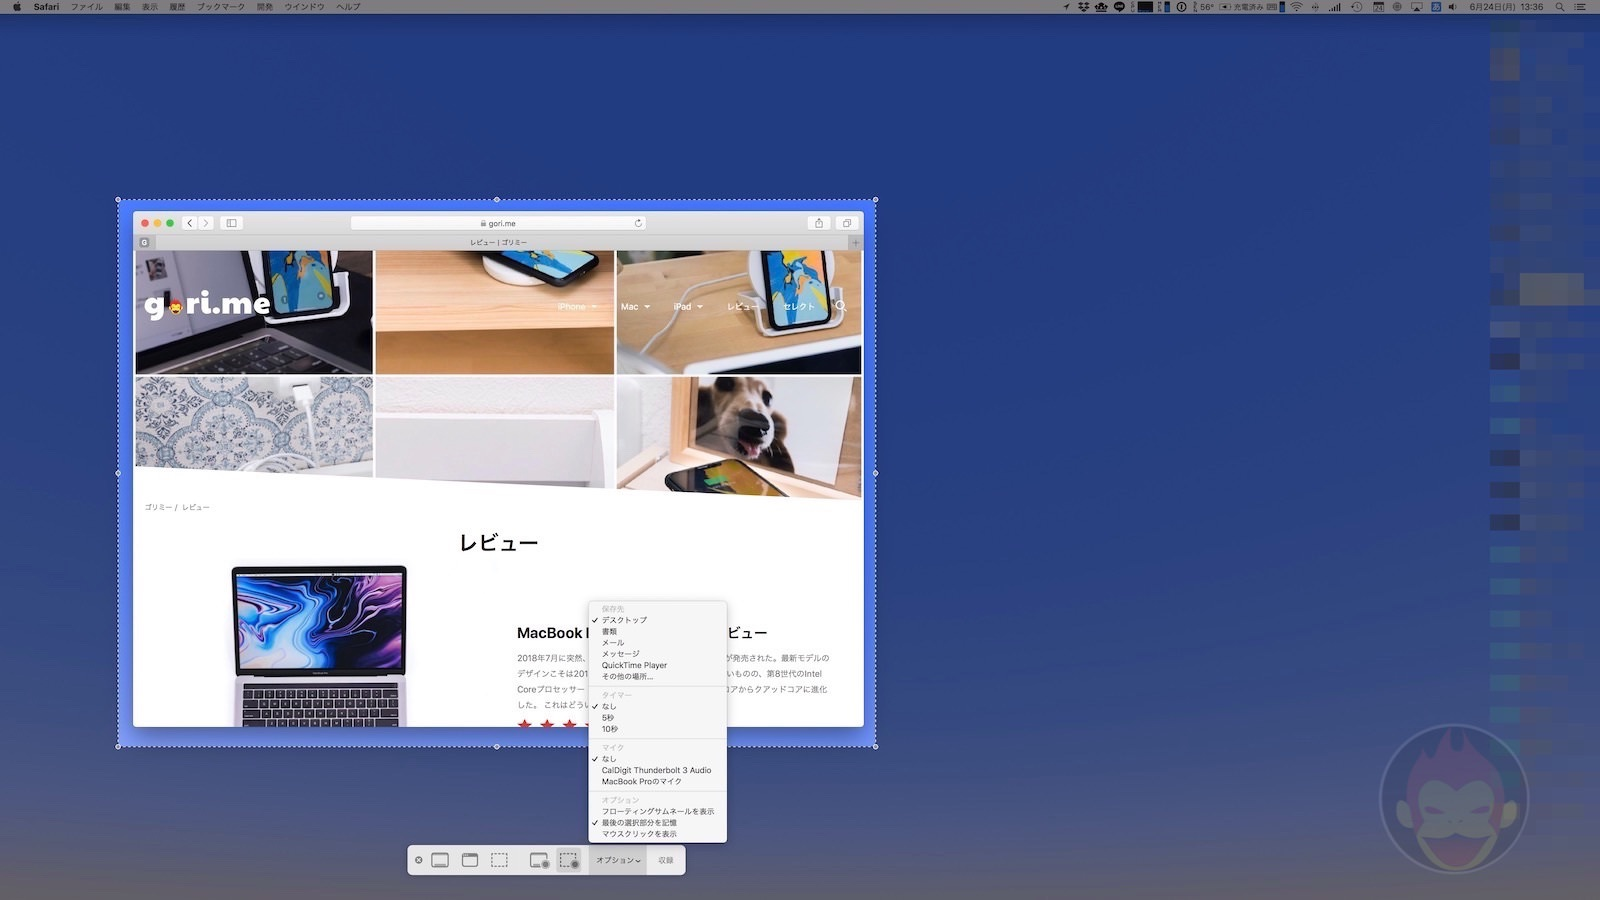 How-to-video-record-screen-on-mac-06.jpg